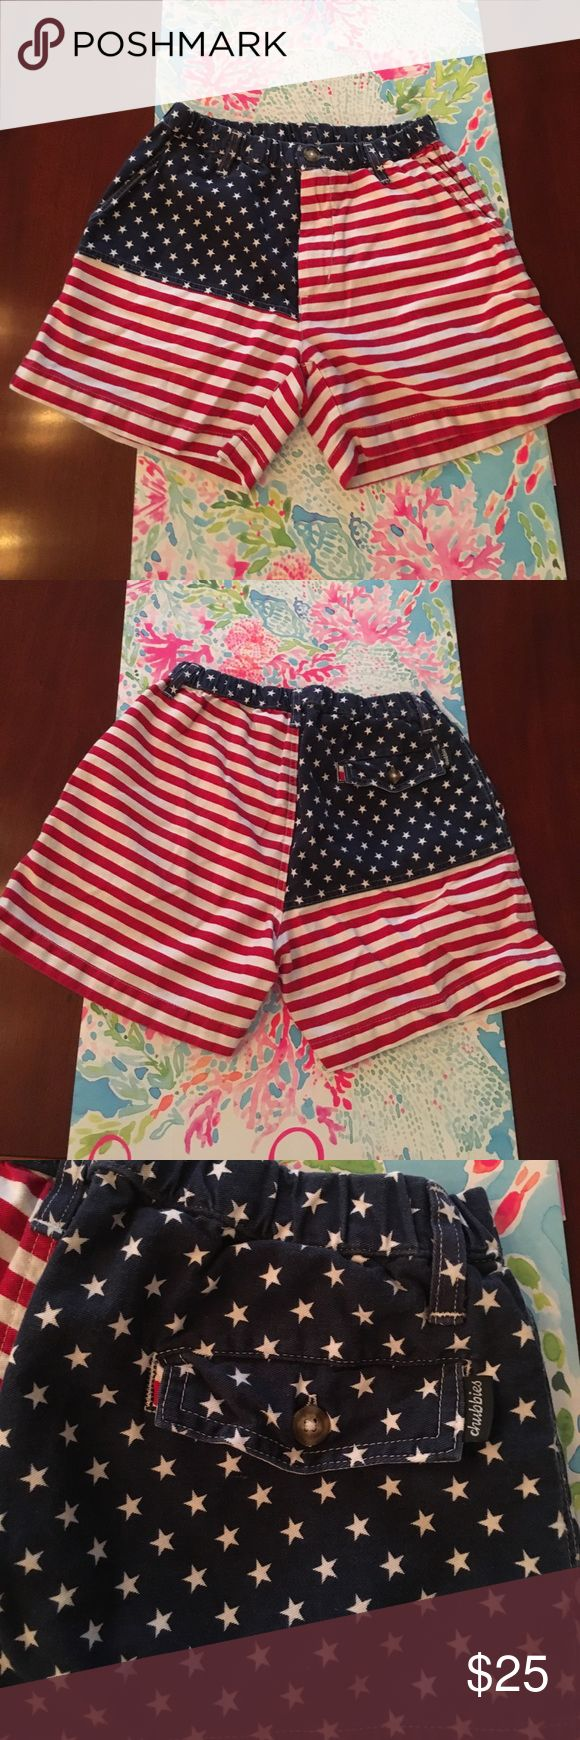 Chubbies Mericas shorts size small men's Size small Chubbie's men's shorts. Size small. American flag pattern. Four 4 inch inseam. Belt loops. Made in the USA. Button and zipper front. Three functional pockets. Back pocket buttons shut. On the inside, the back pocket says the name of the shorts and the size. Excellent condition only worn once. Preppy men's shorts. Super fun for any American holiday. Red white and blue Chubbie's Shorts Flat Front